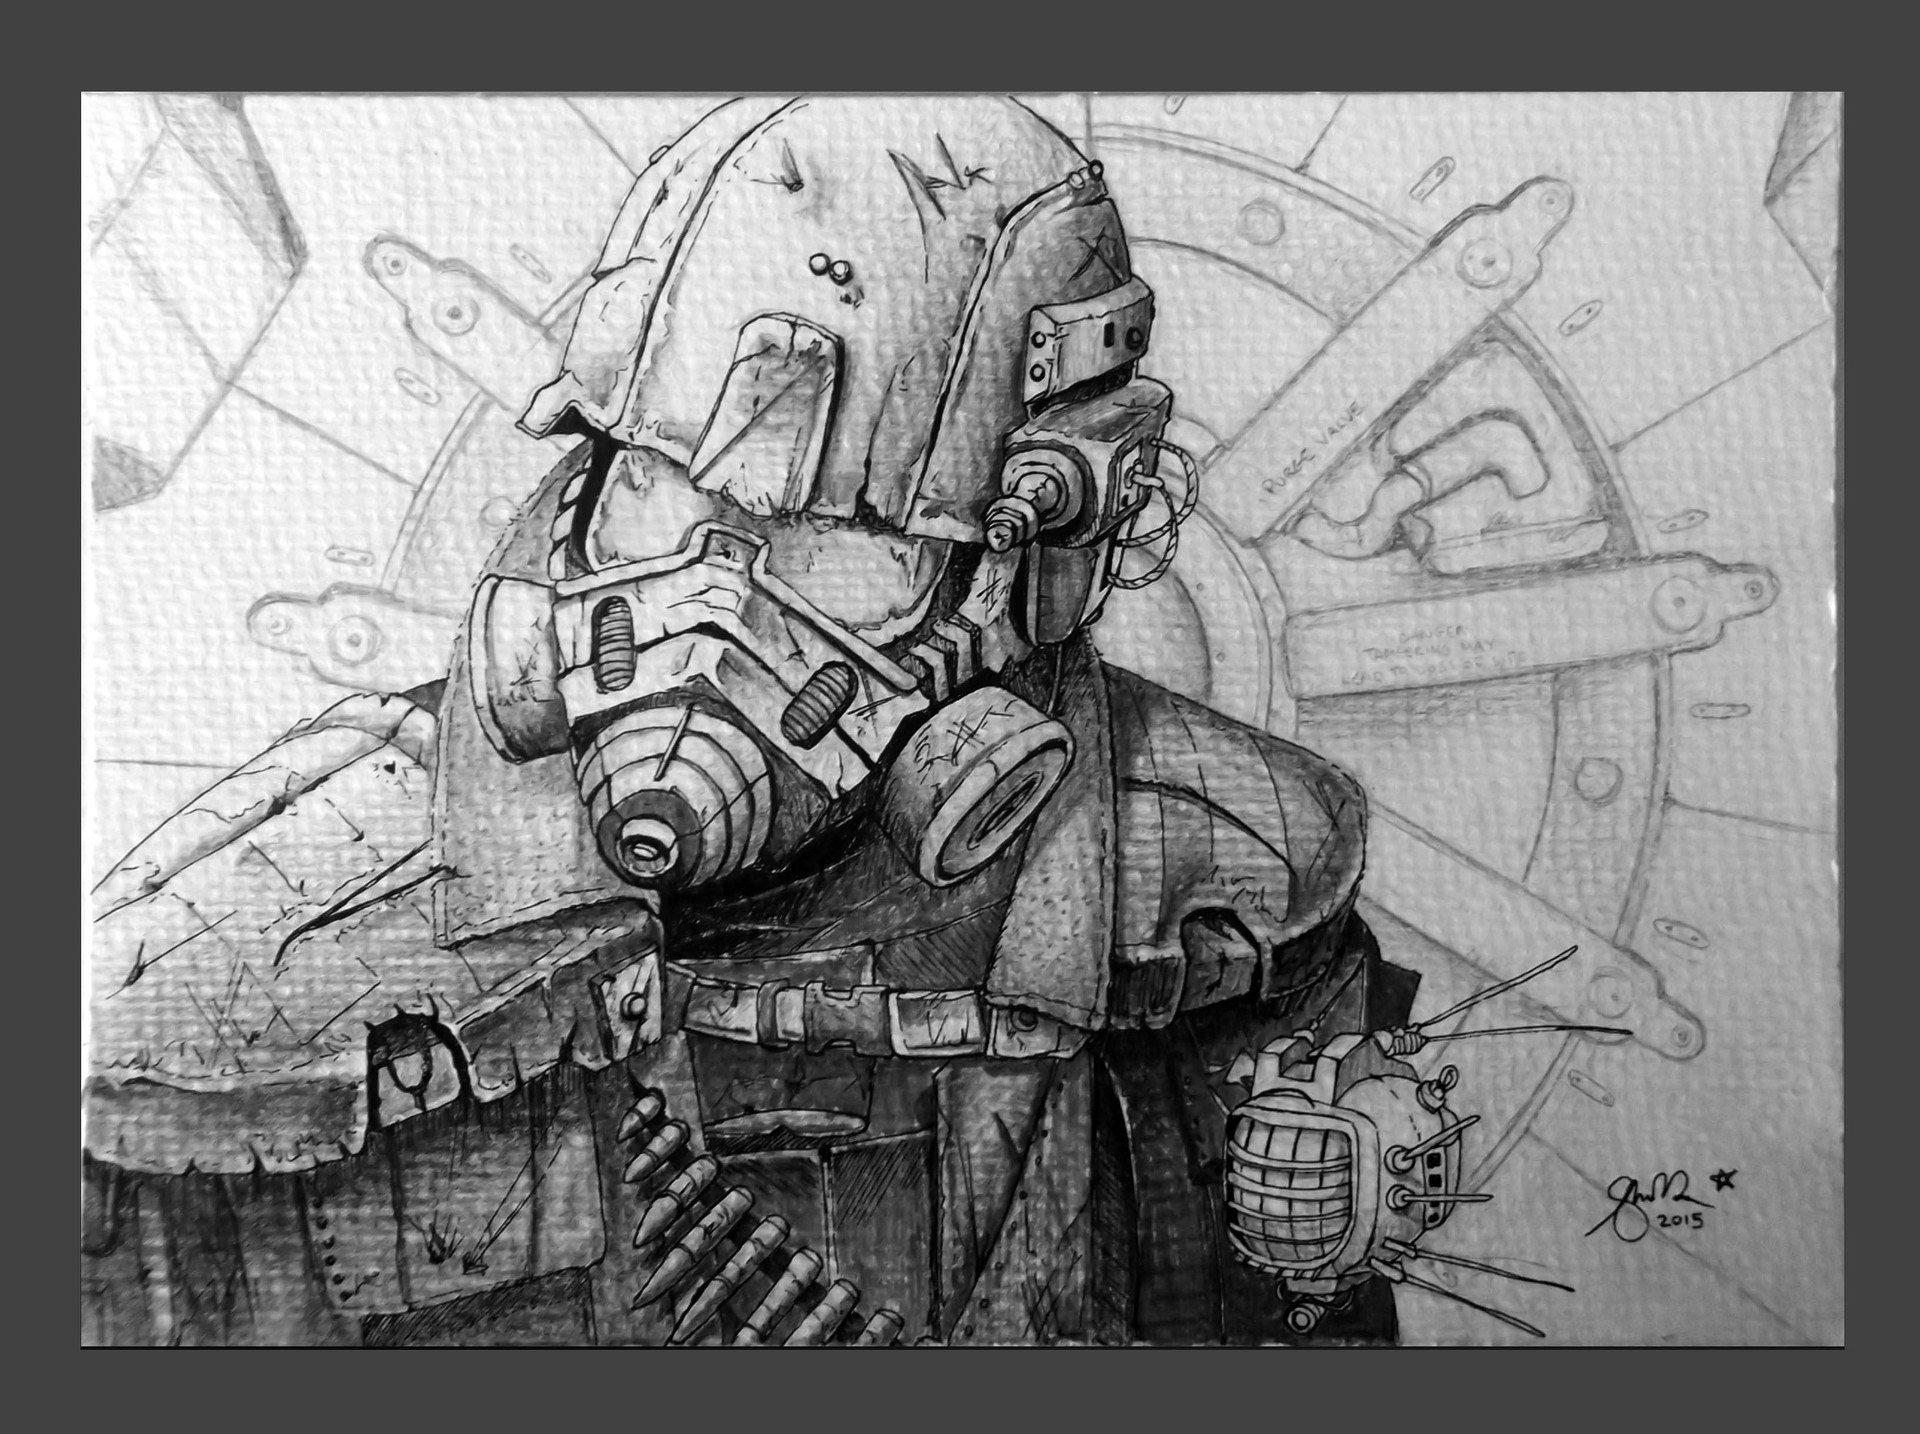 Shellz art fallout guy